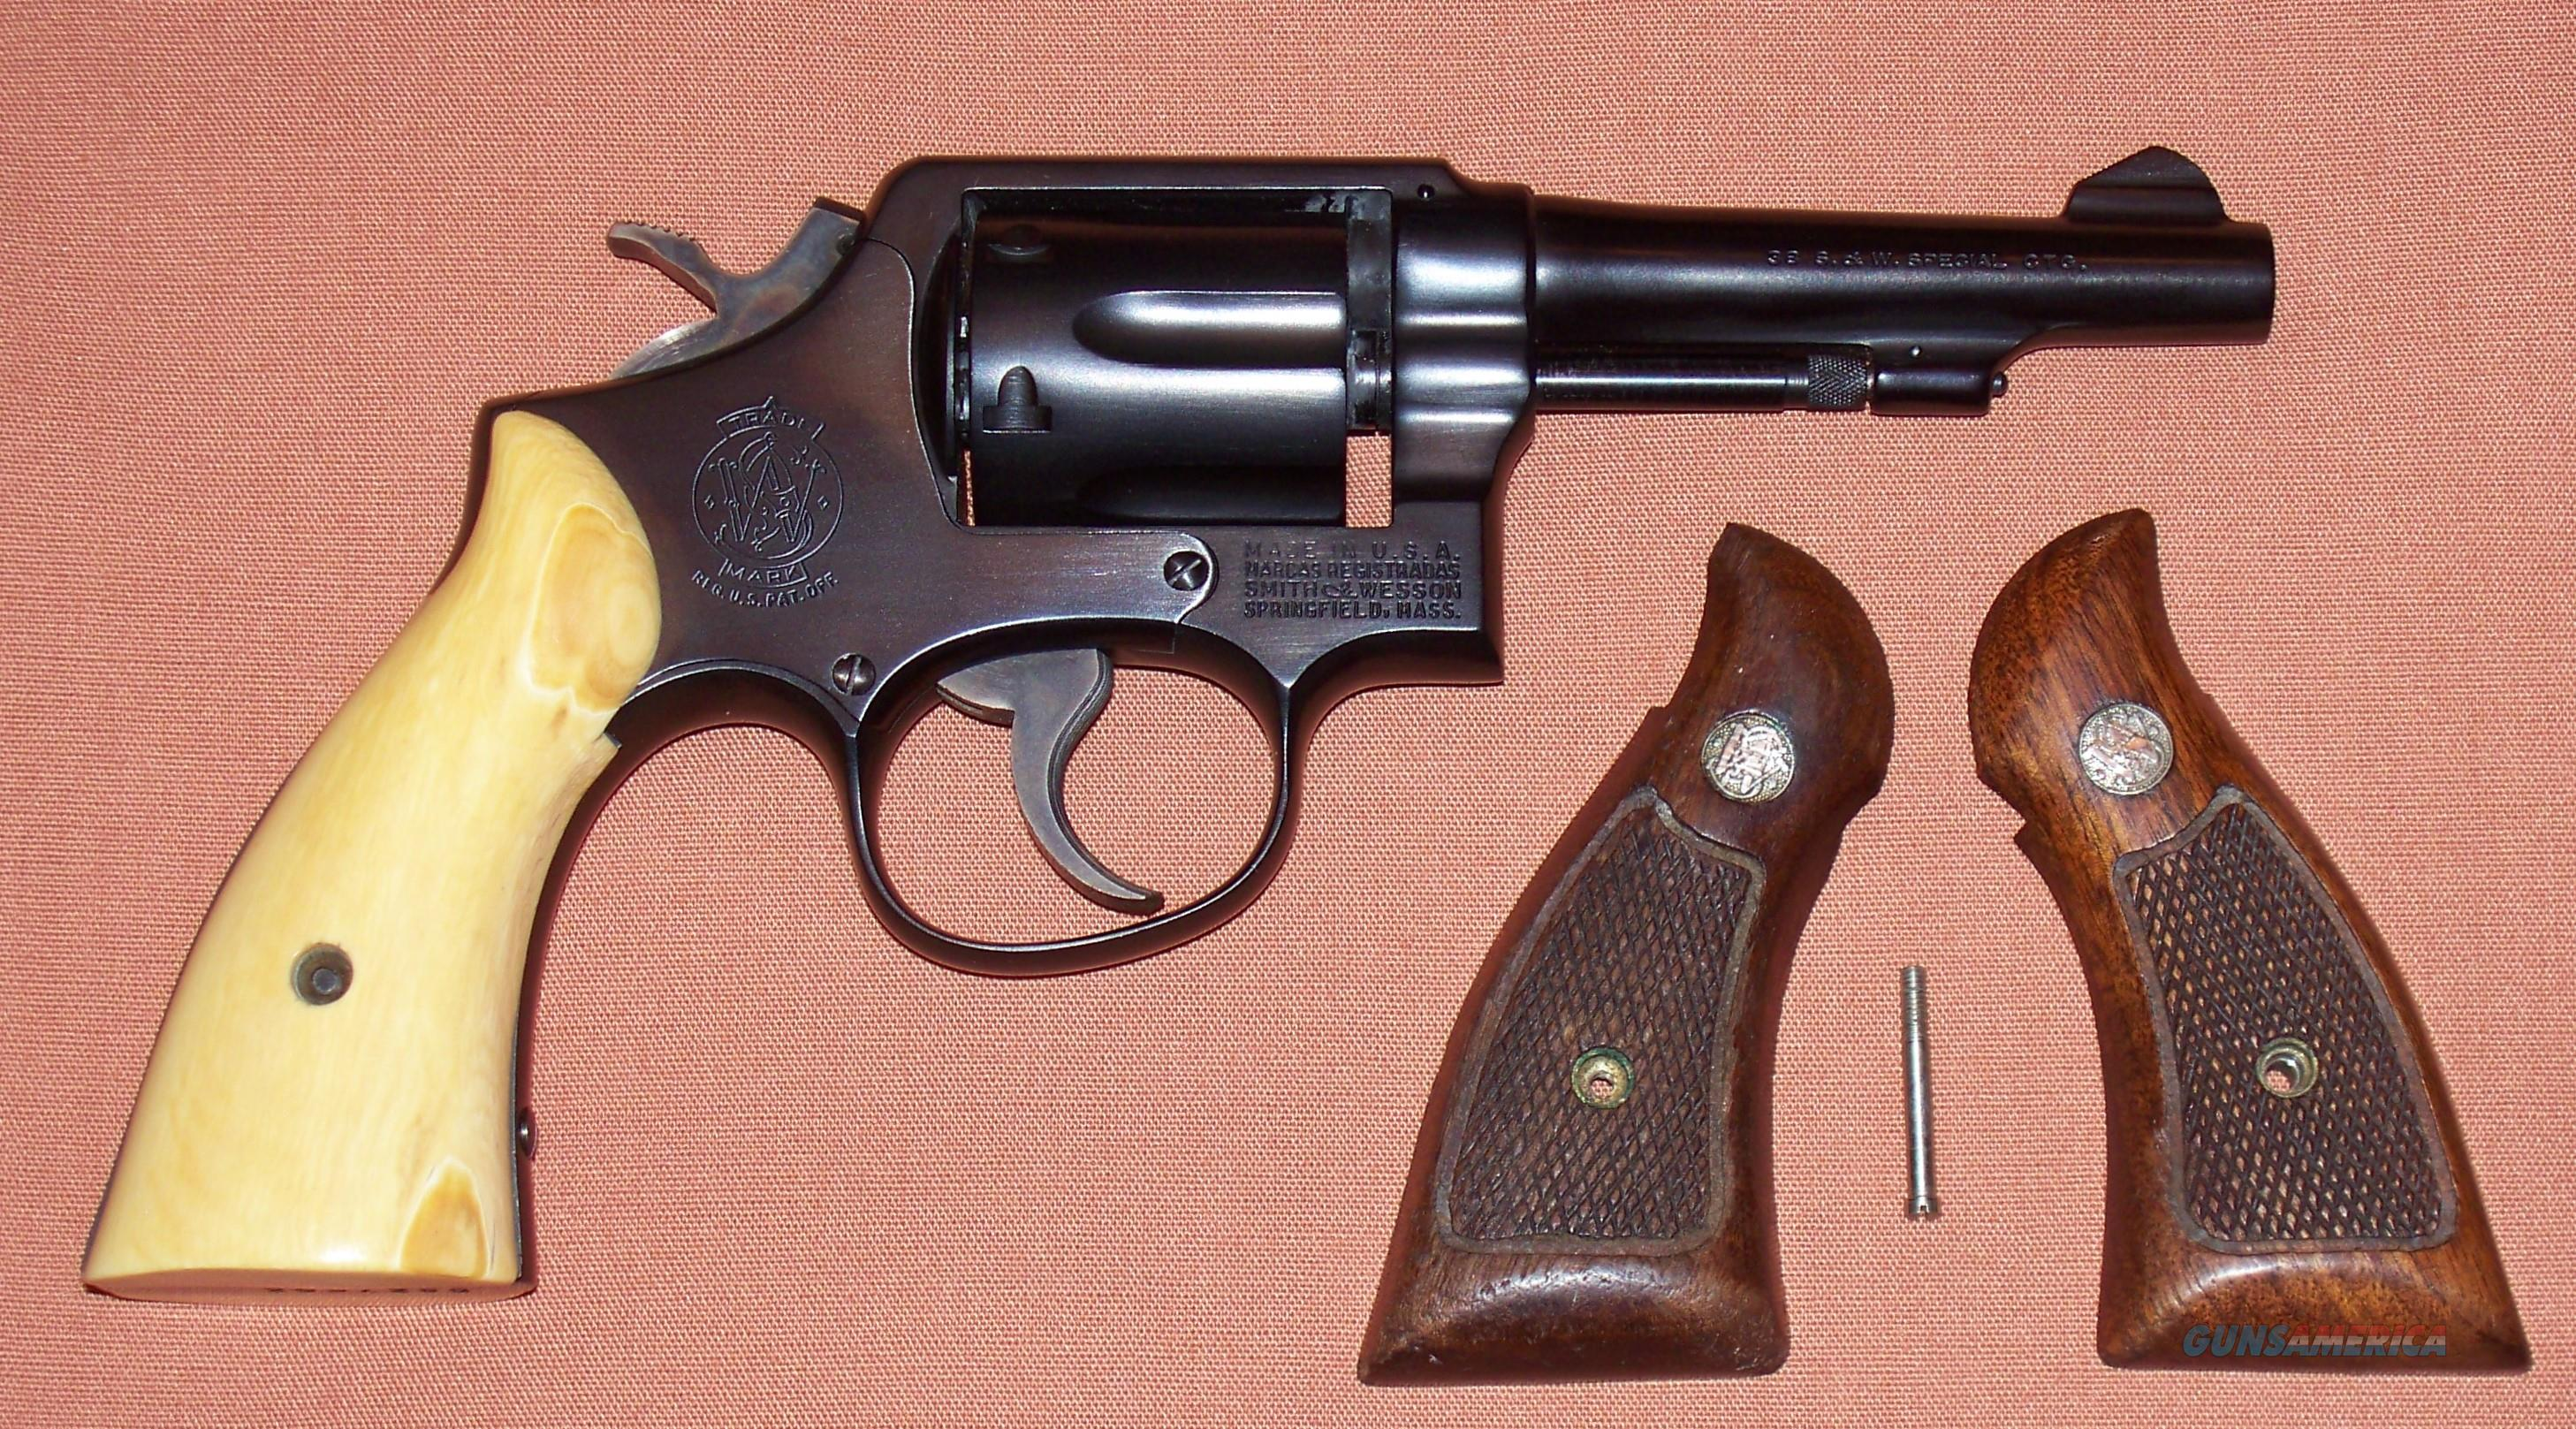 Smith & Wesson Model 10-5 .38 Special with Ivory Grips c. 1966-7  Guns > Pistols > Smith & Wesson Revolvers > Model 10